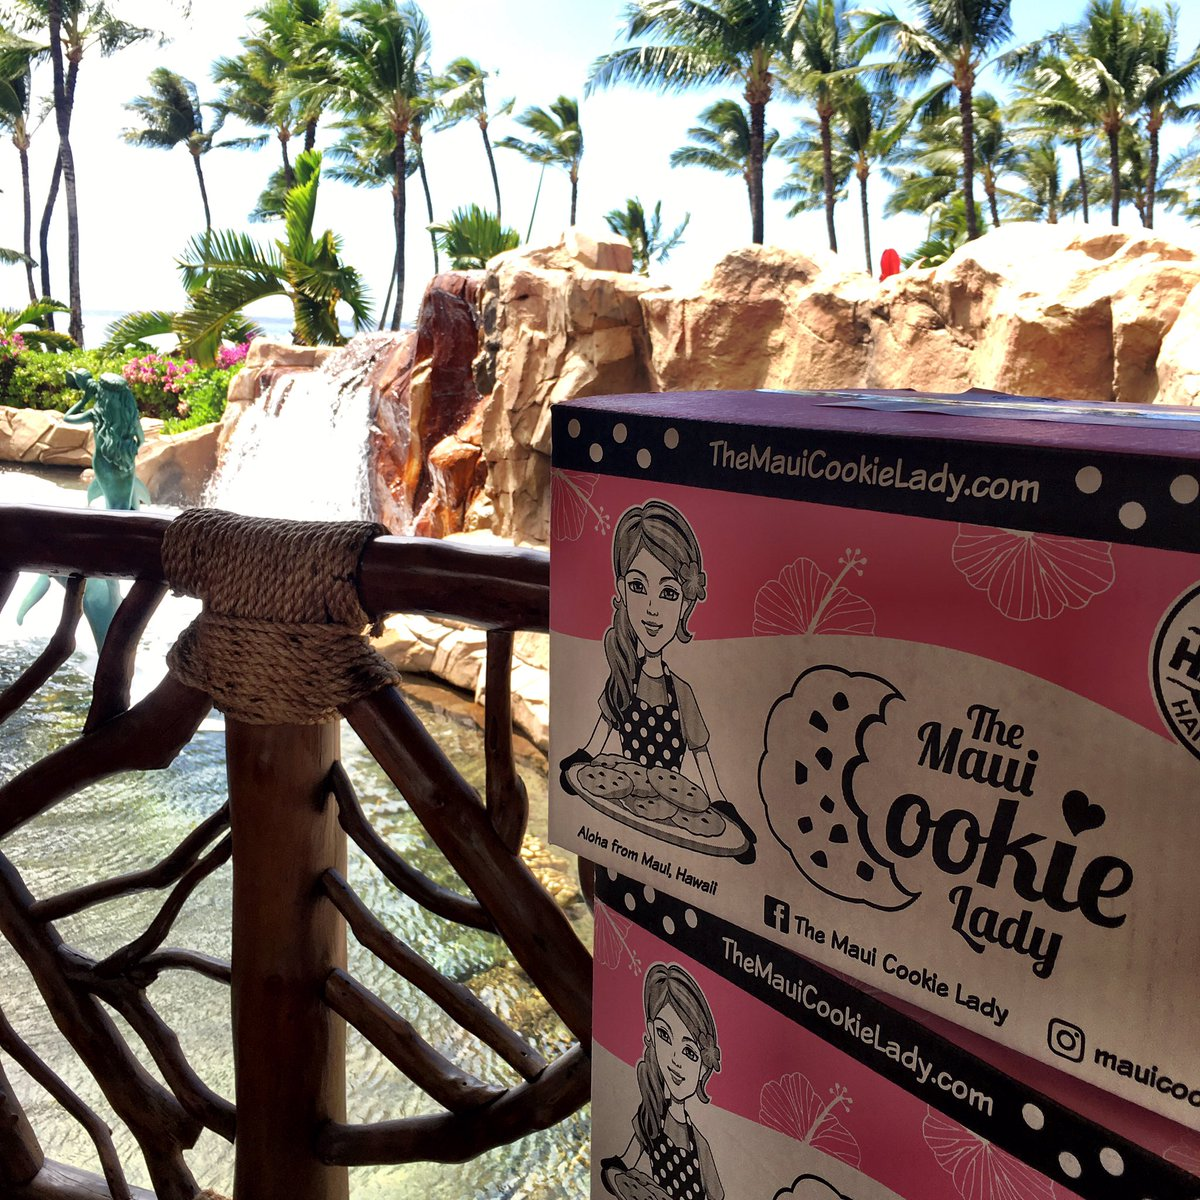 My front office view today at work @grandwailea #Maui #Hawaii #tropicalparadise #travel #startups #Foodiechats